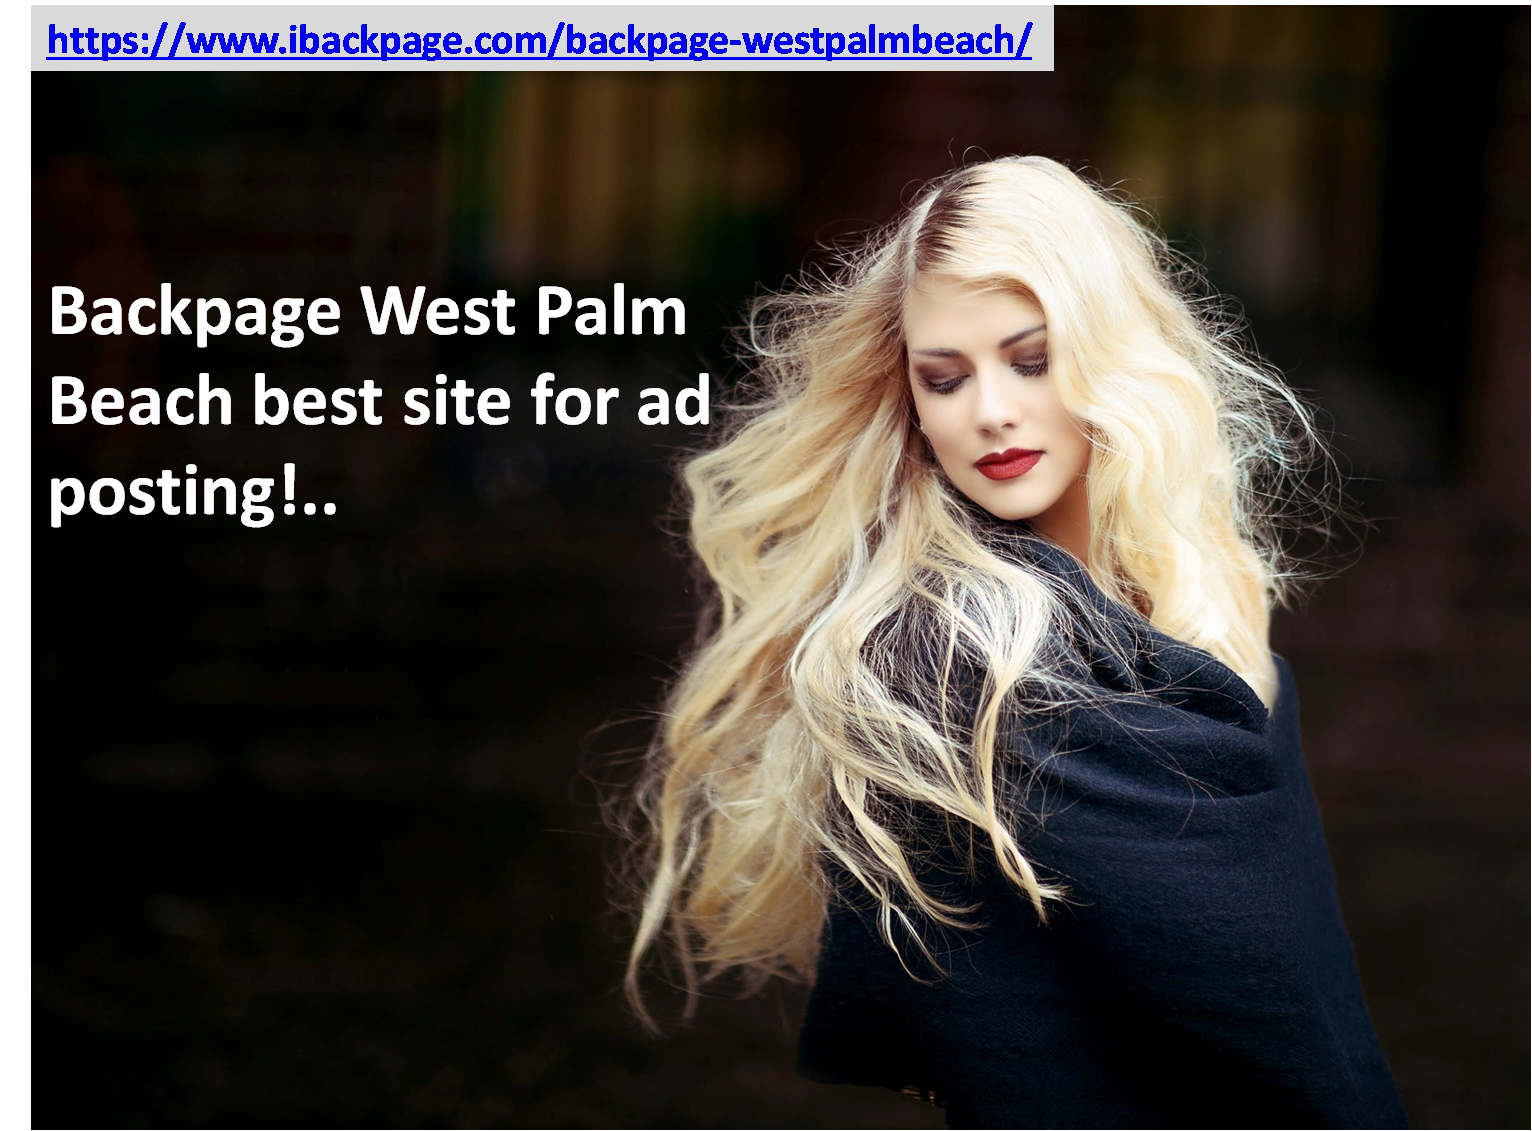 Backpage West Palm Beach